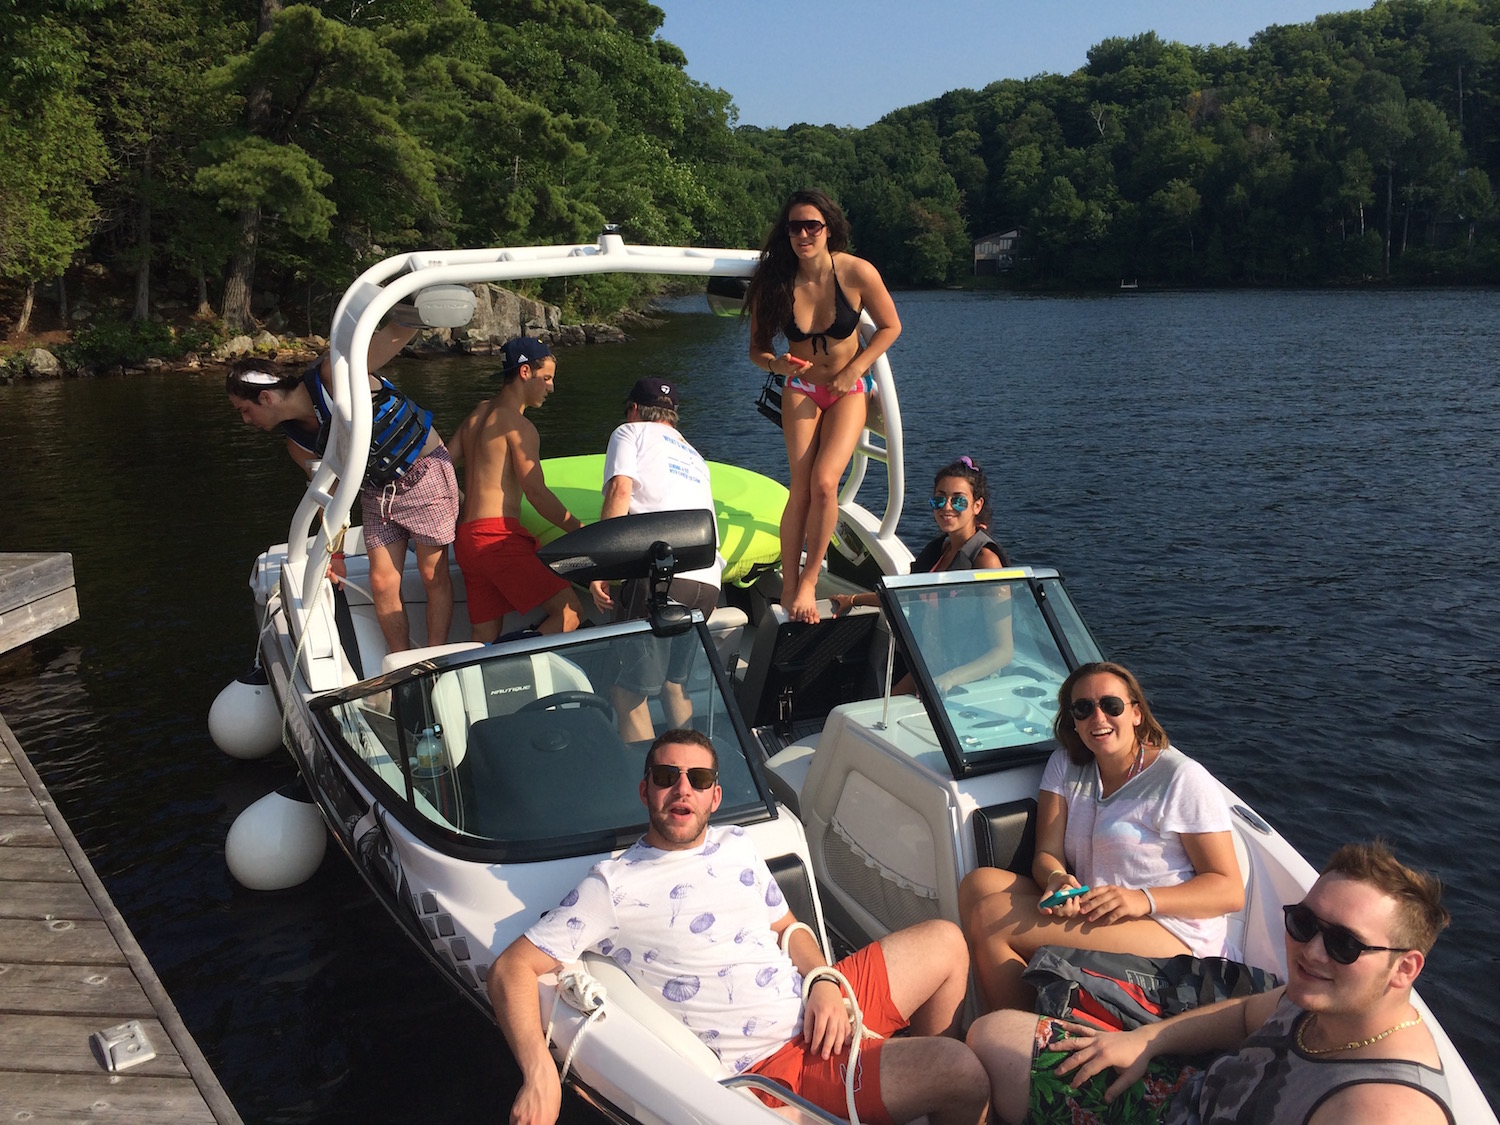 On the Boat on Lake Rosseau